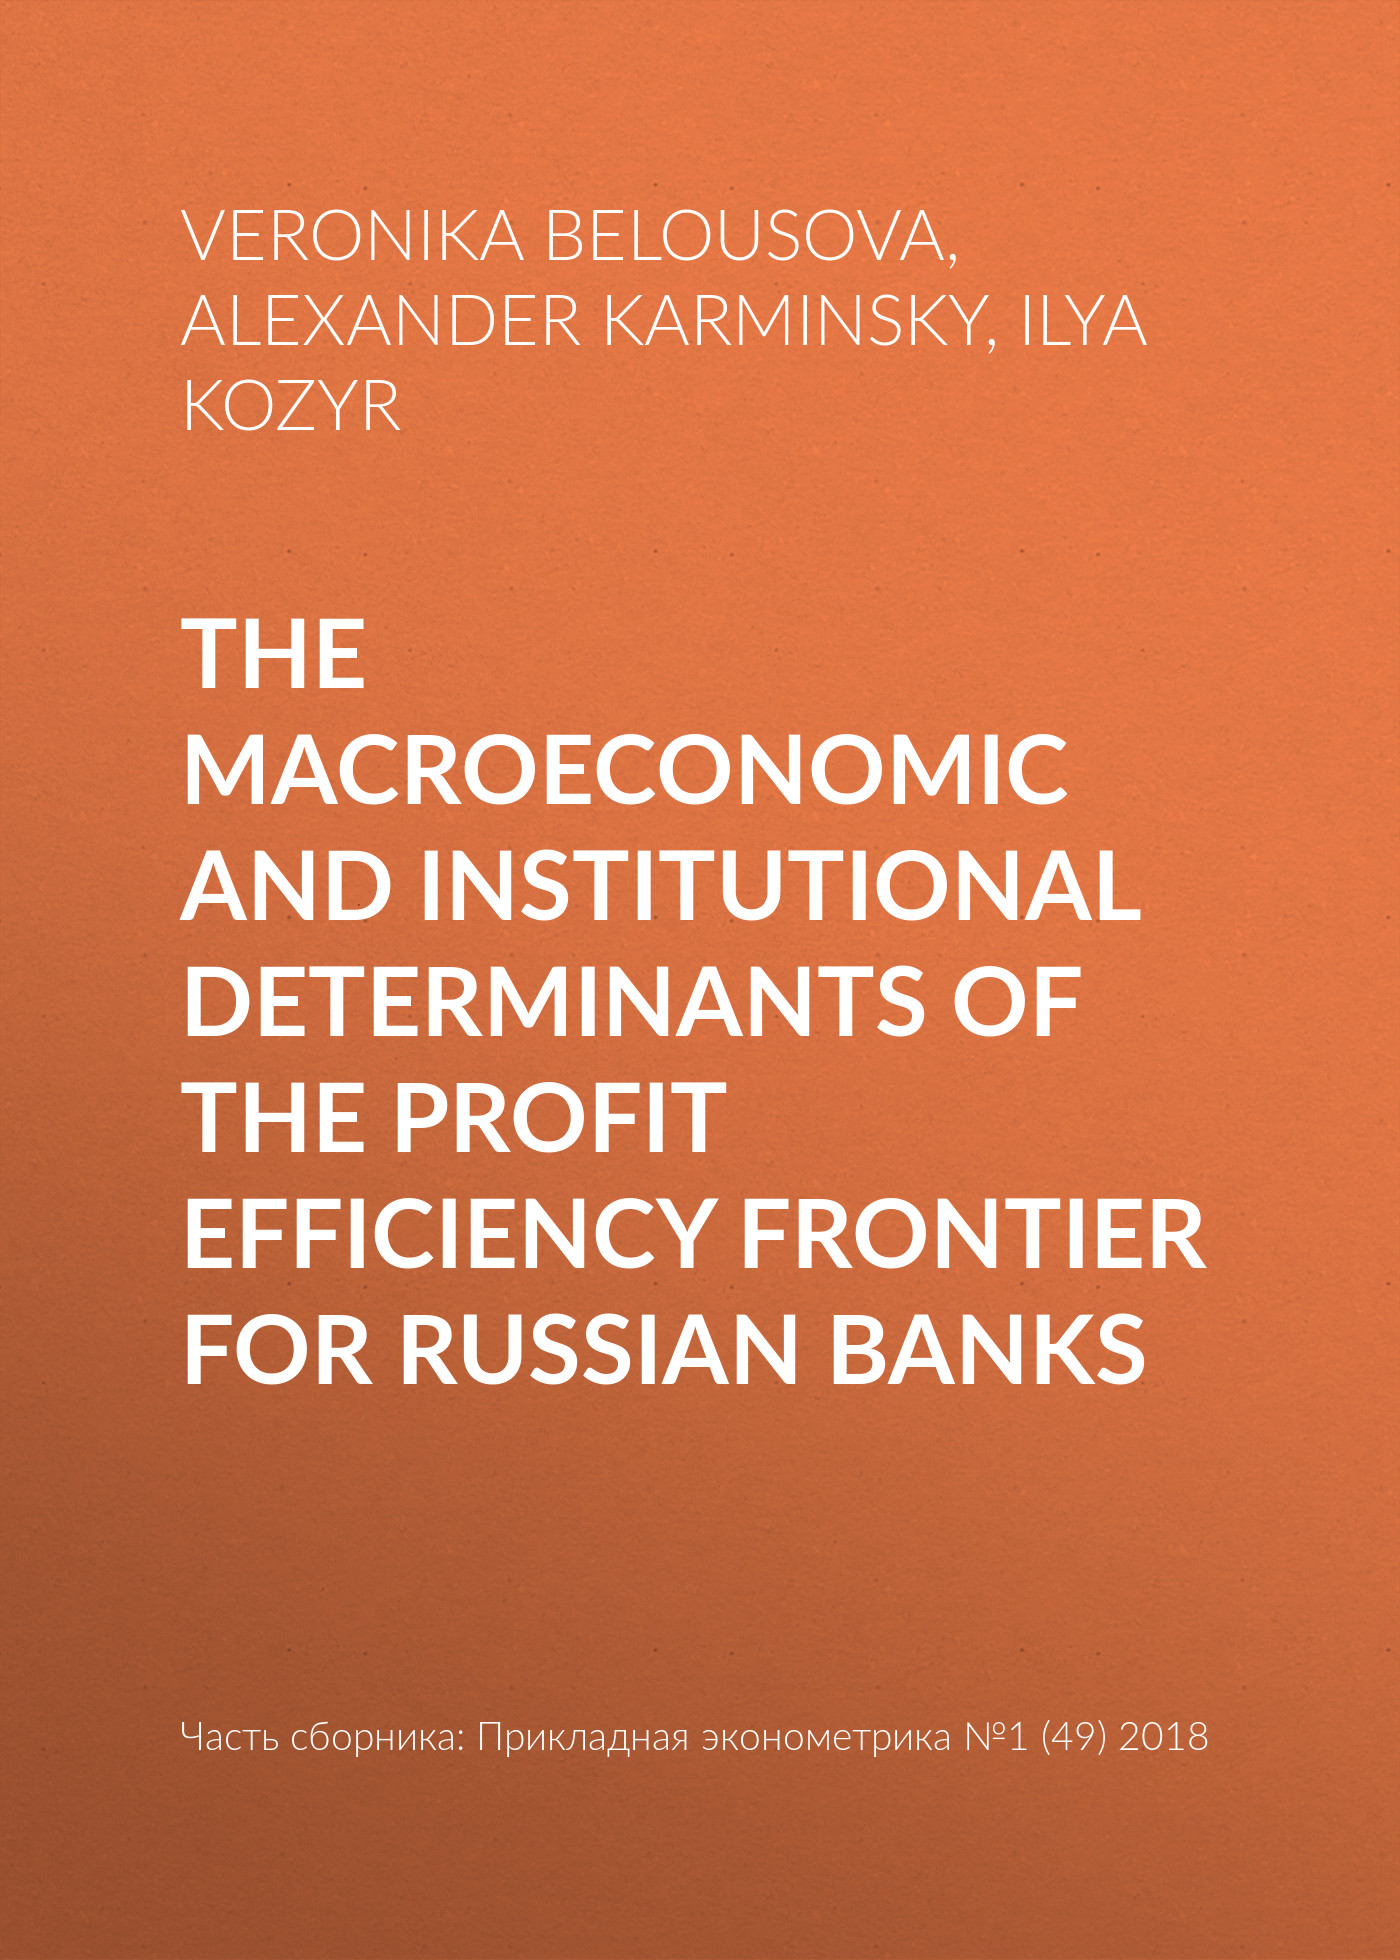 Veronika Belousova The macroeconomic and institutional determinants of the profit efficiency frontier for Russian banks футболка с полной запечаткой мужская printio телефонная будка